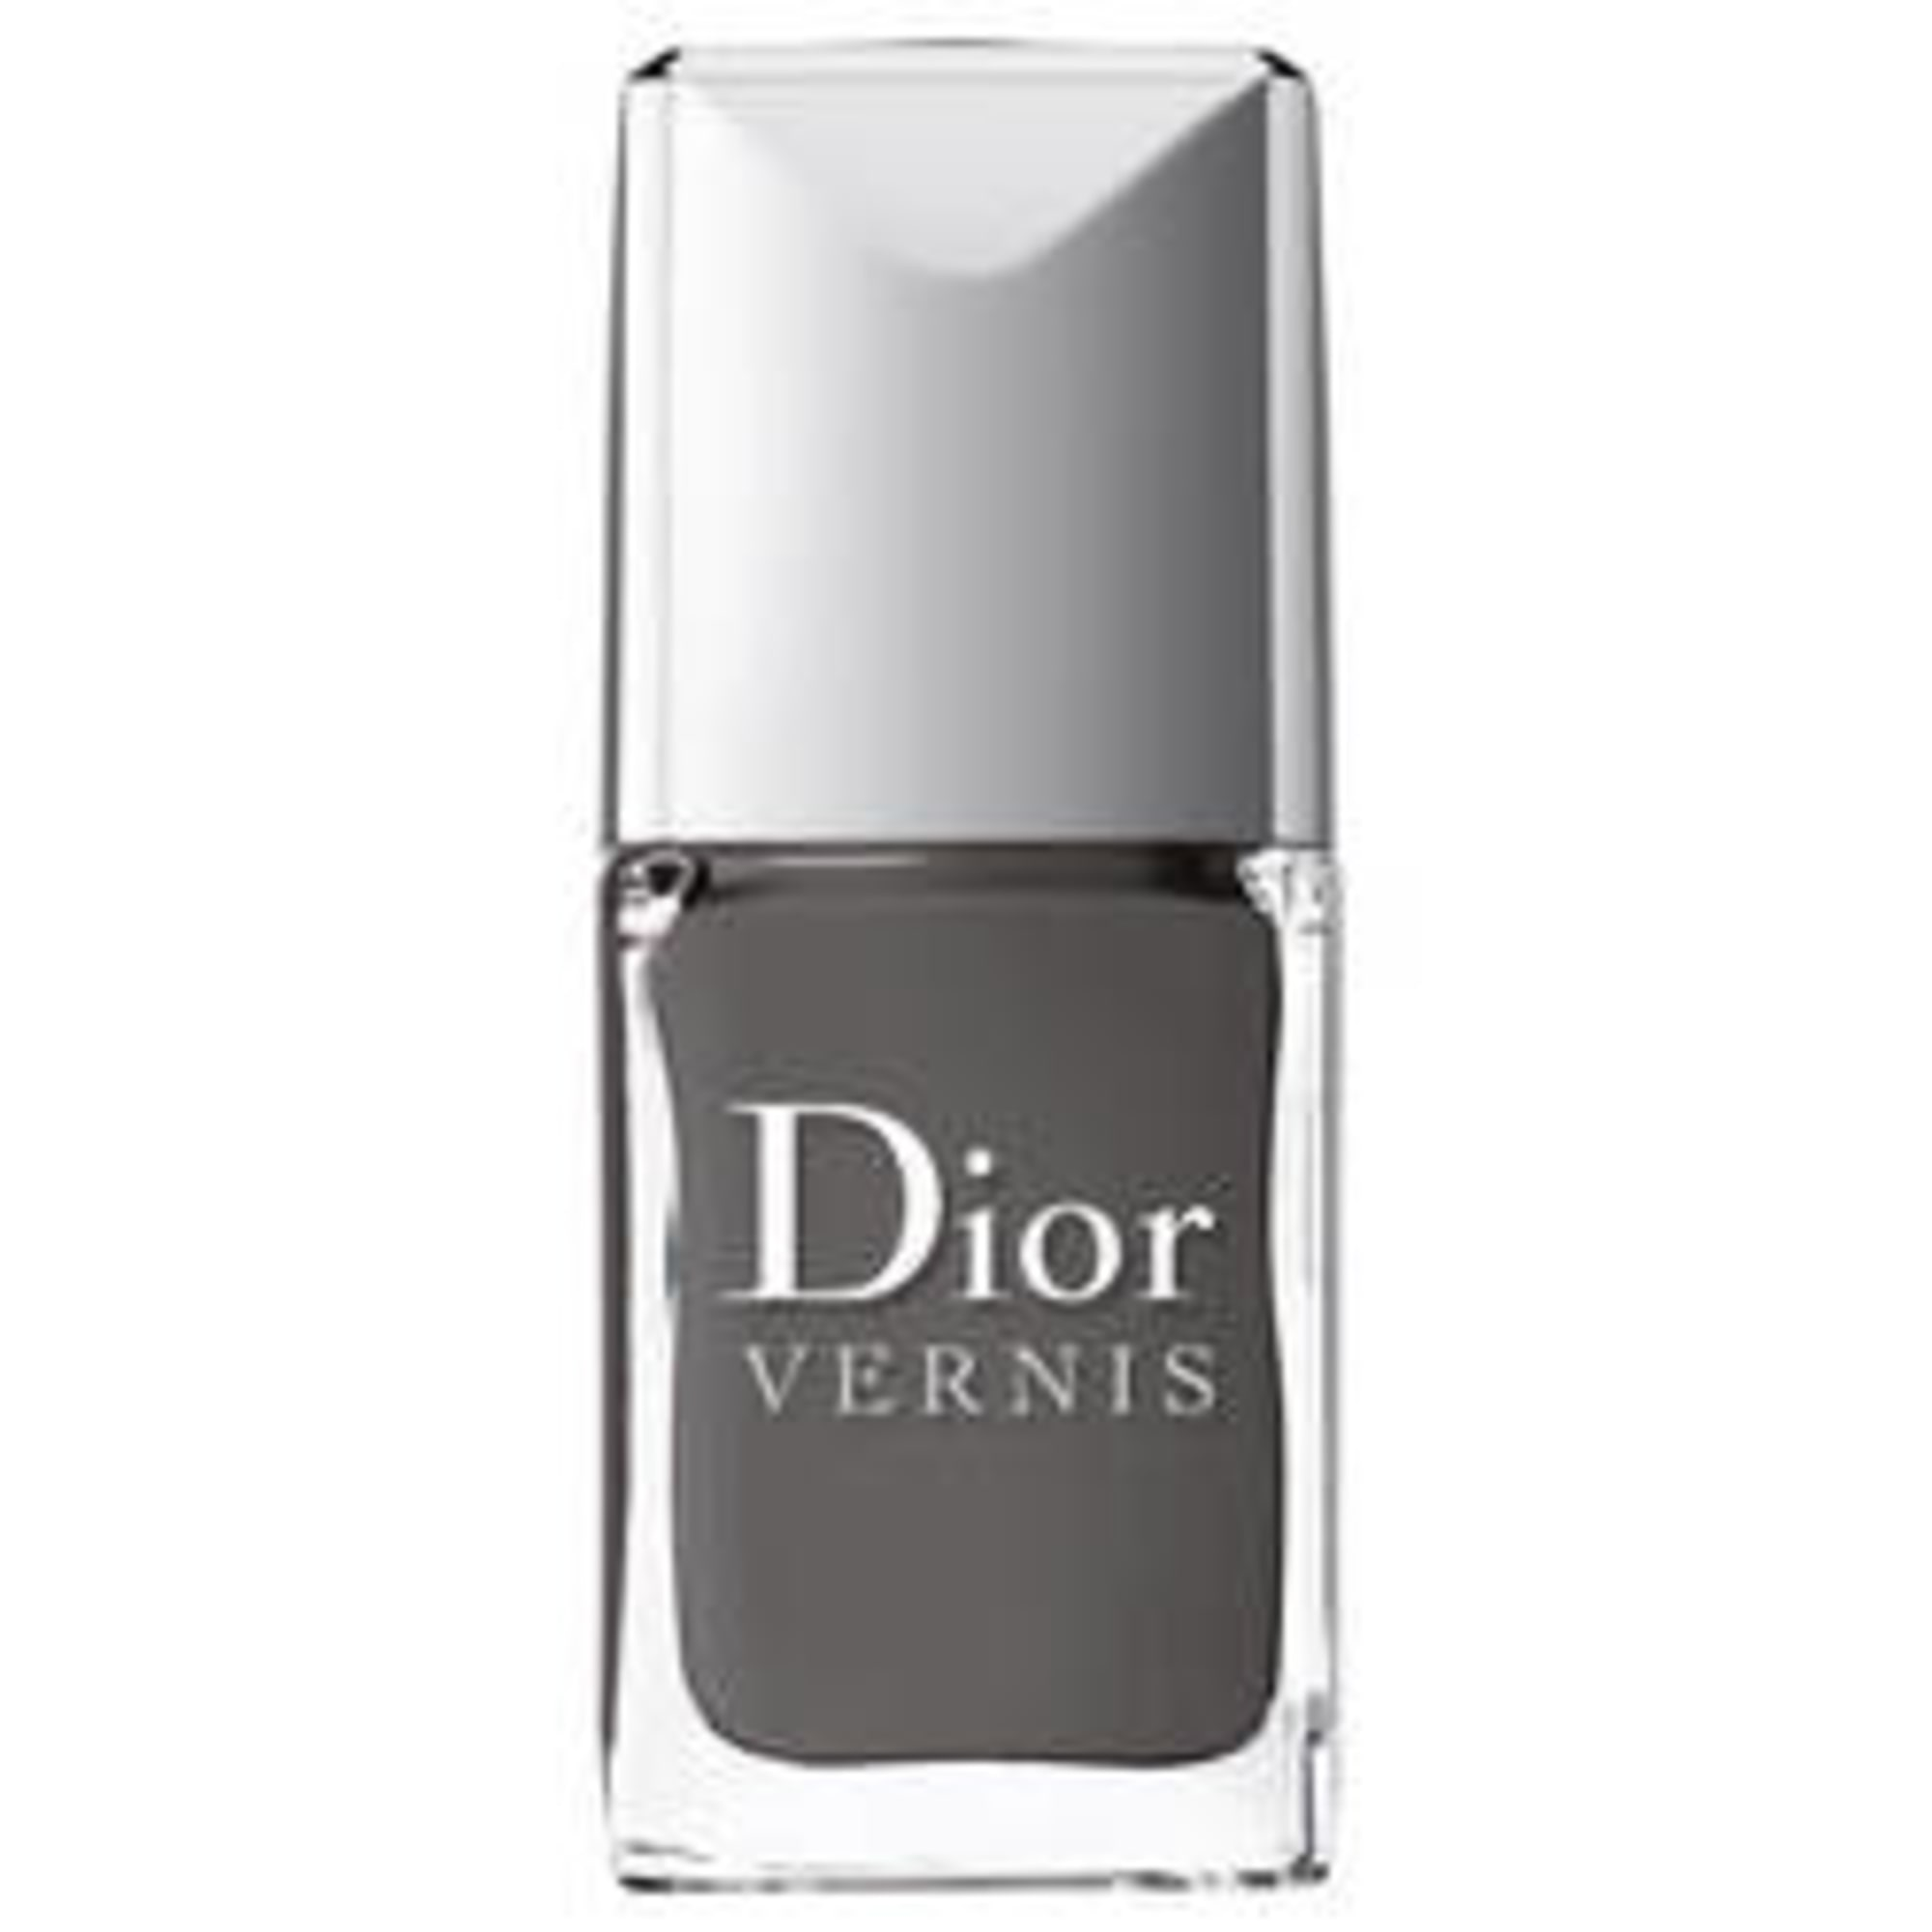 vernis a ongle dior